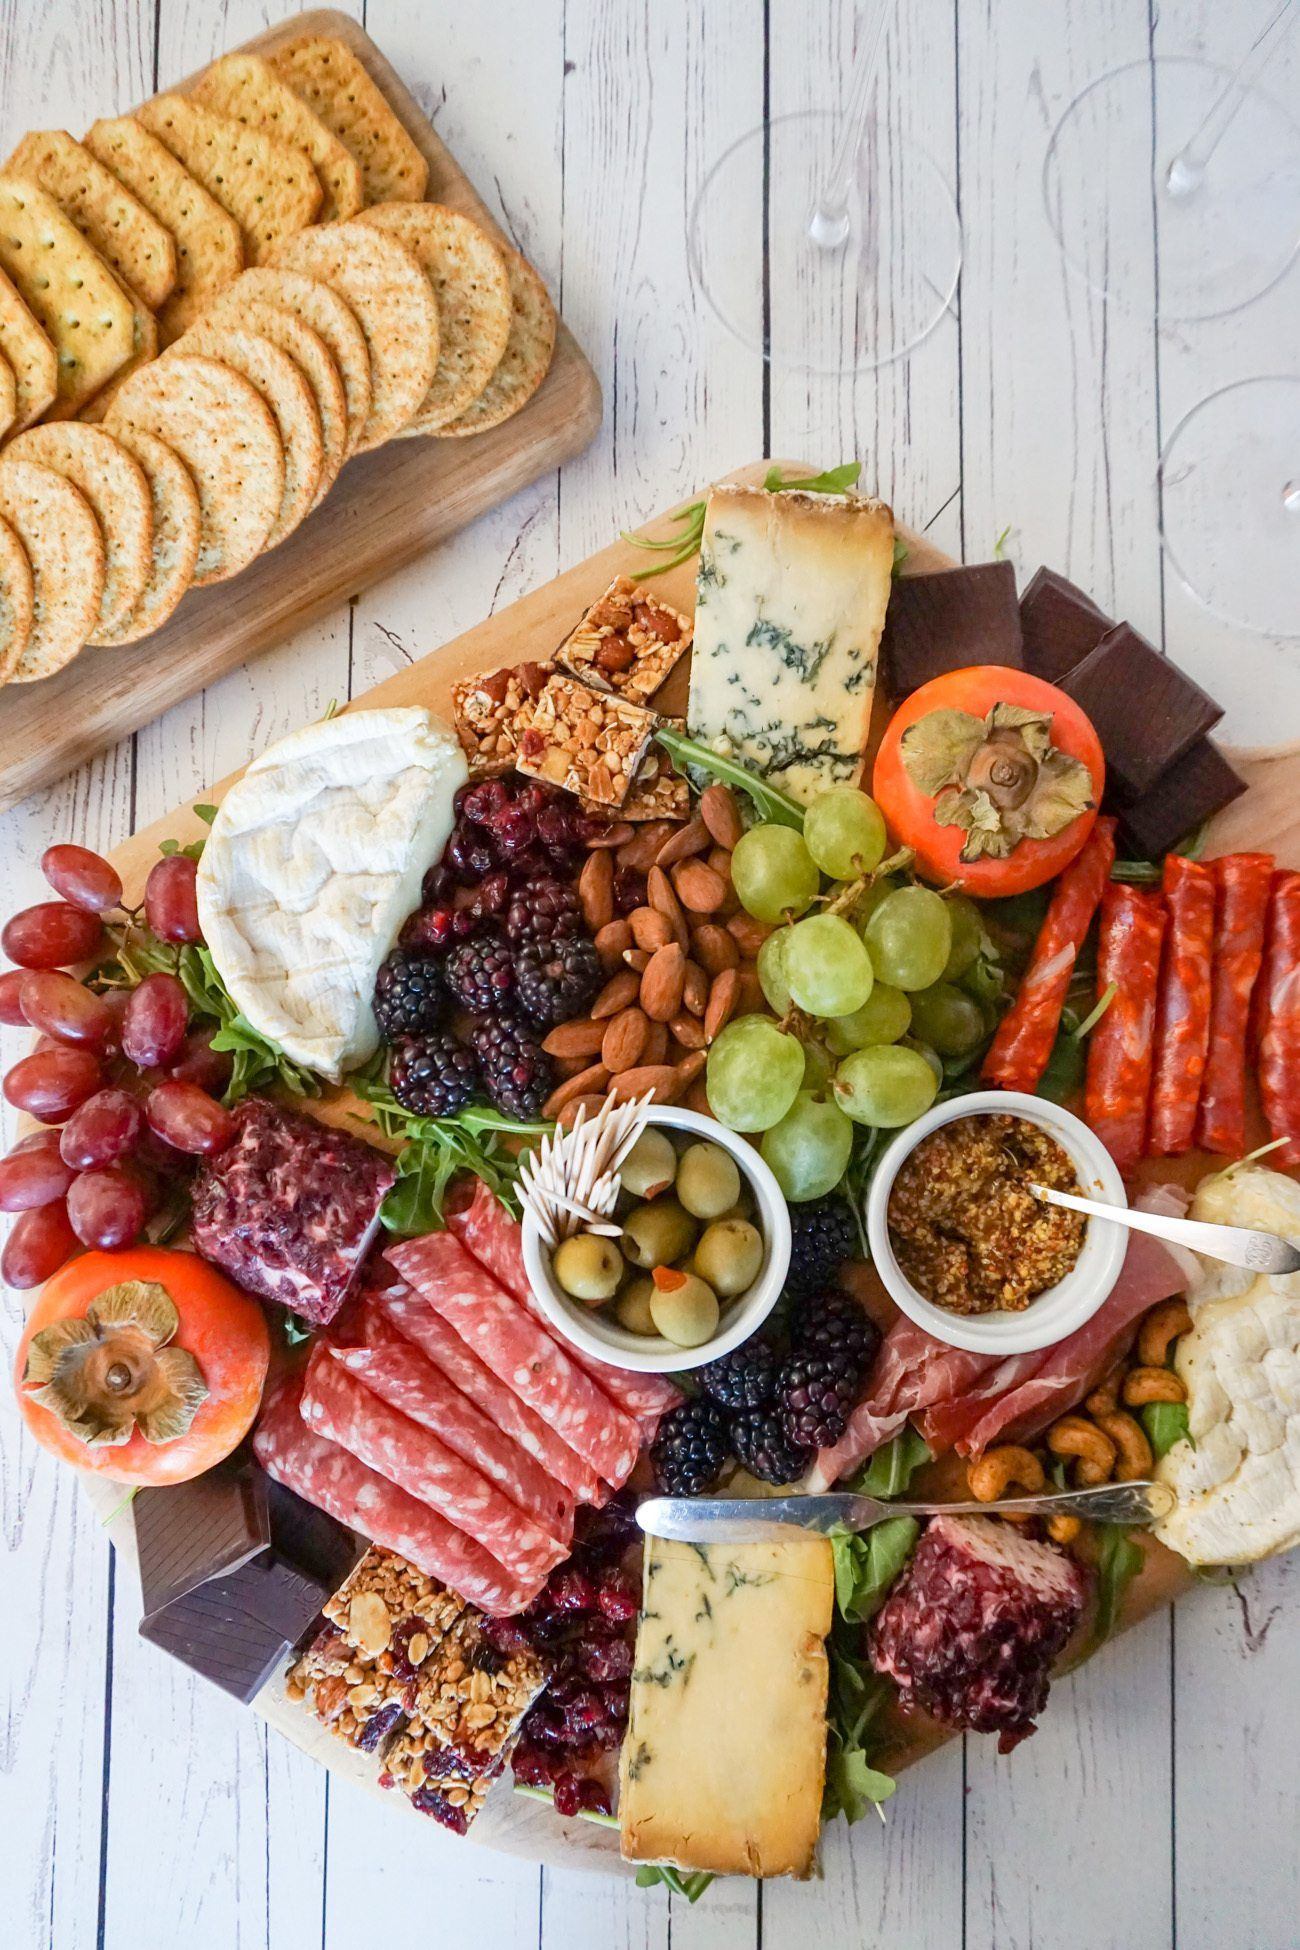 Tips for Making the Ultimate Charcuterie and Cheese Board - La Jolla Mom | Appetizer recipes, Charcuterie and cheese board, Food platters